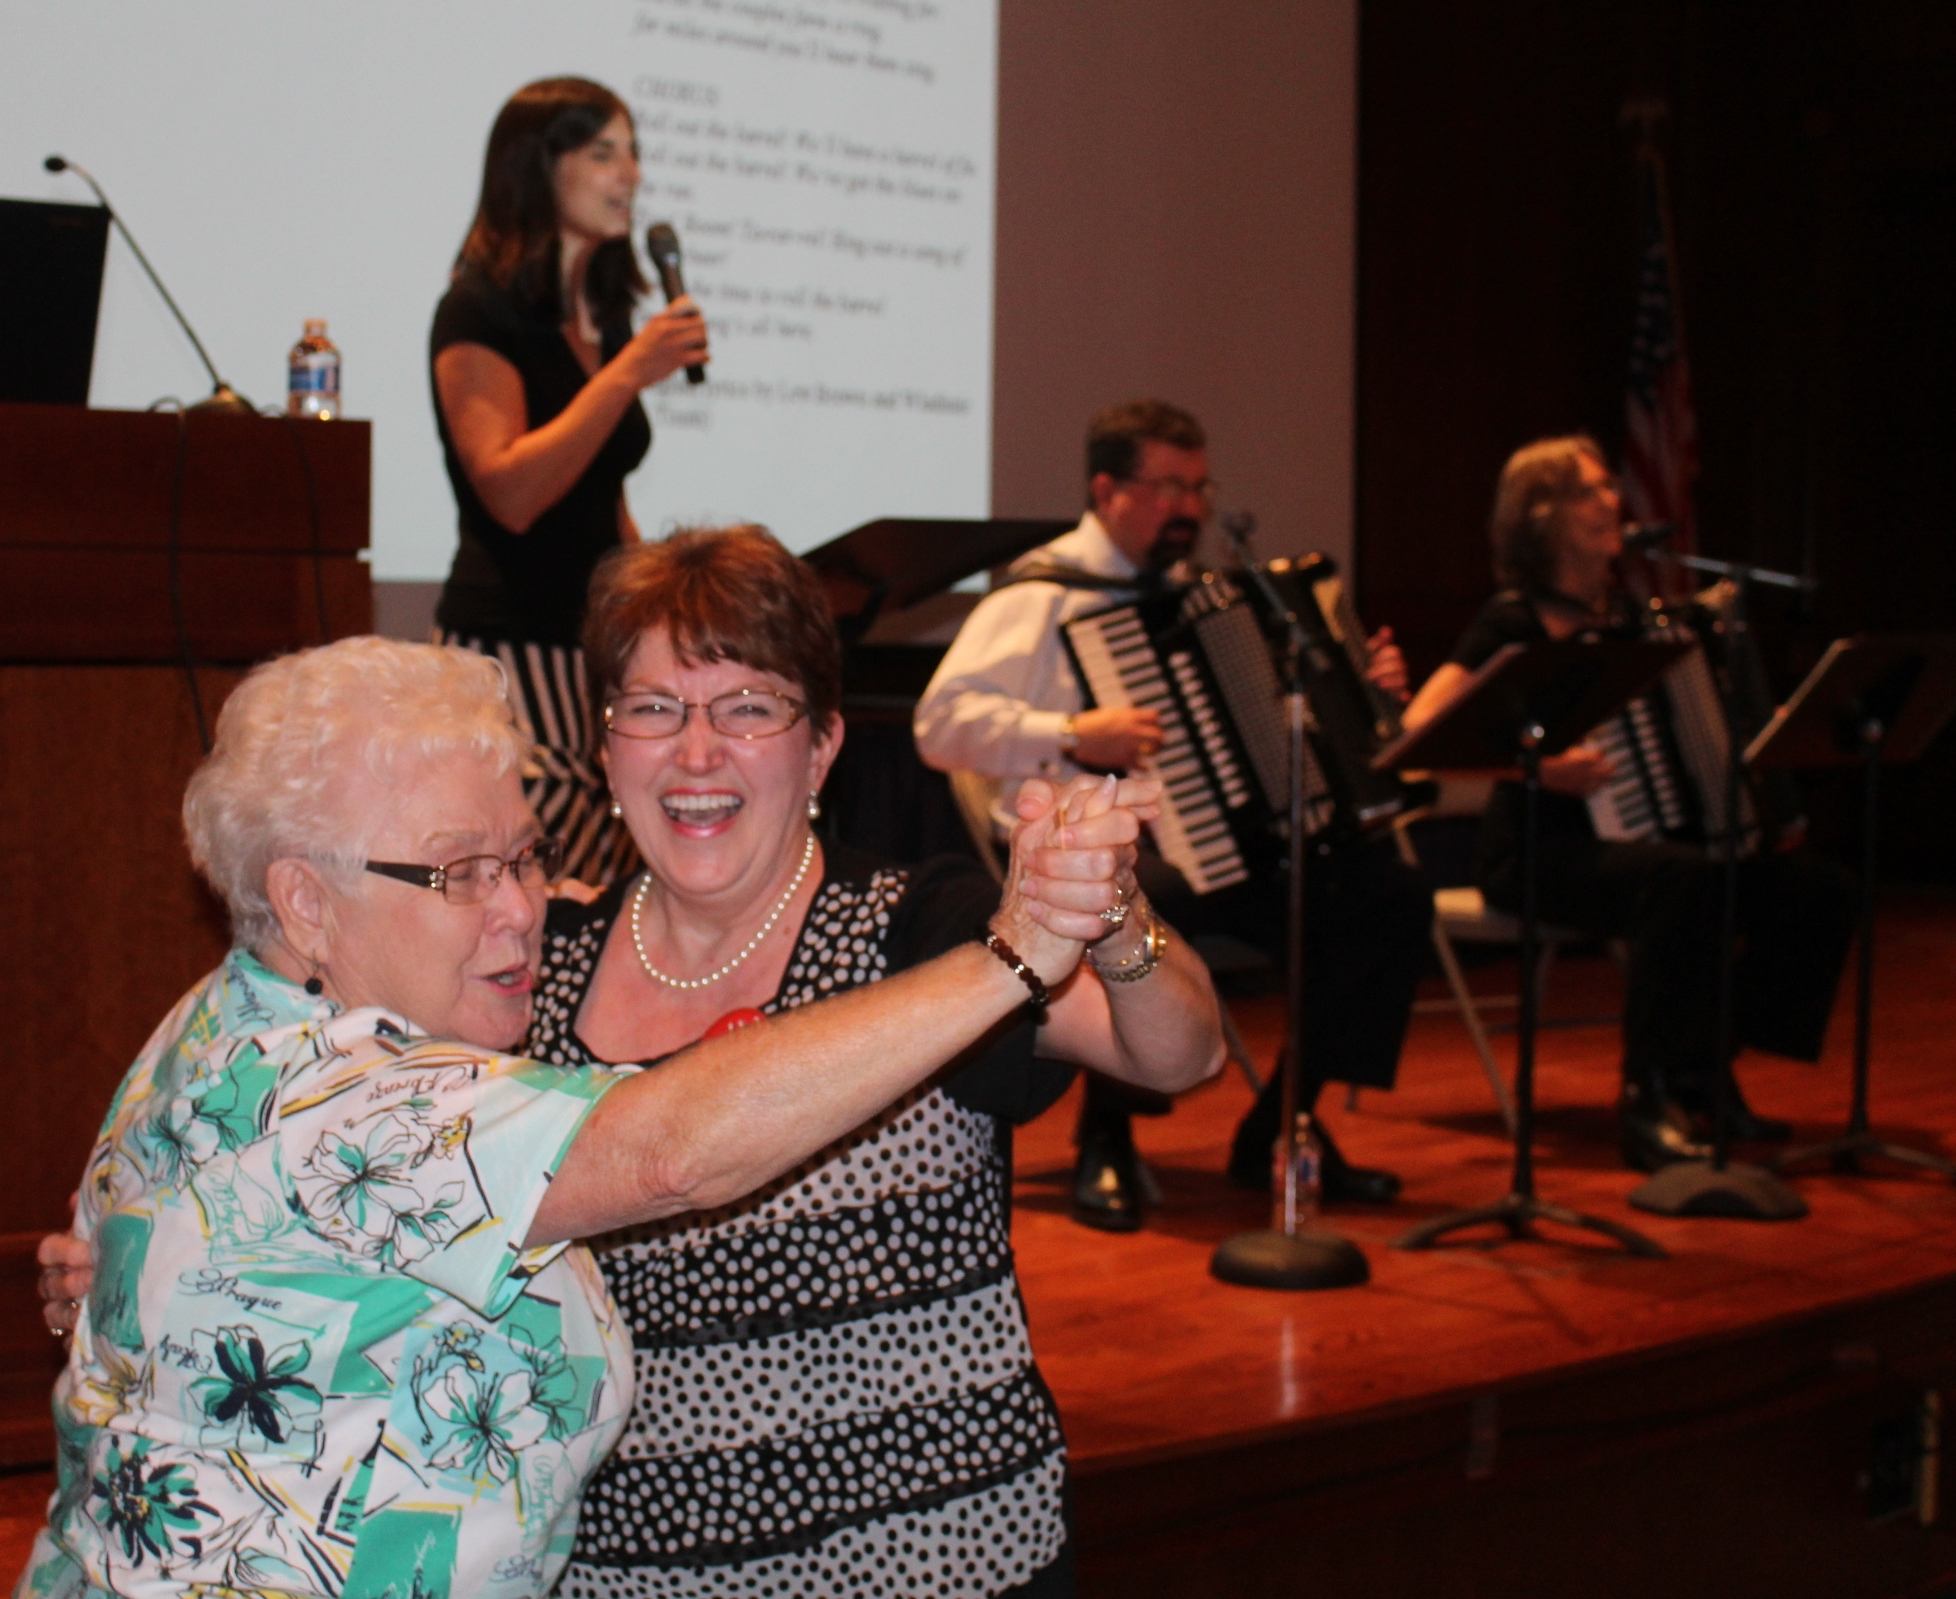 Where there's music, there's dancing, especially when it's Czech polka music! A crowd of 125 enjoyed the presentation in Austin./Gary E. McKee photo  See more photos .